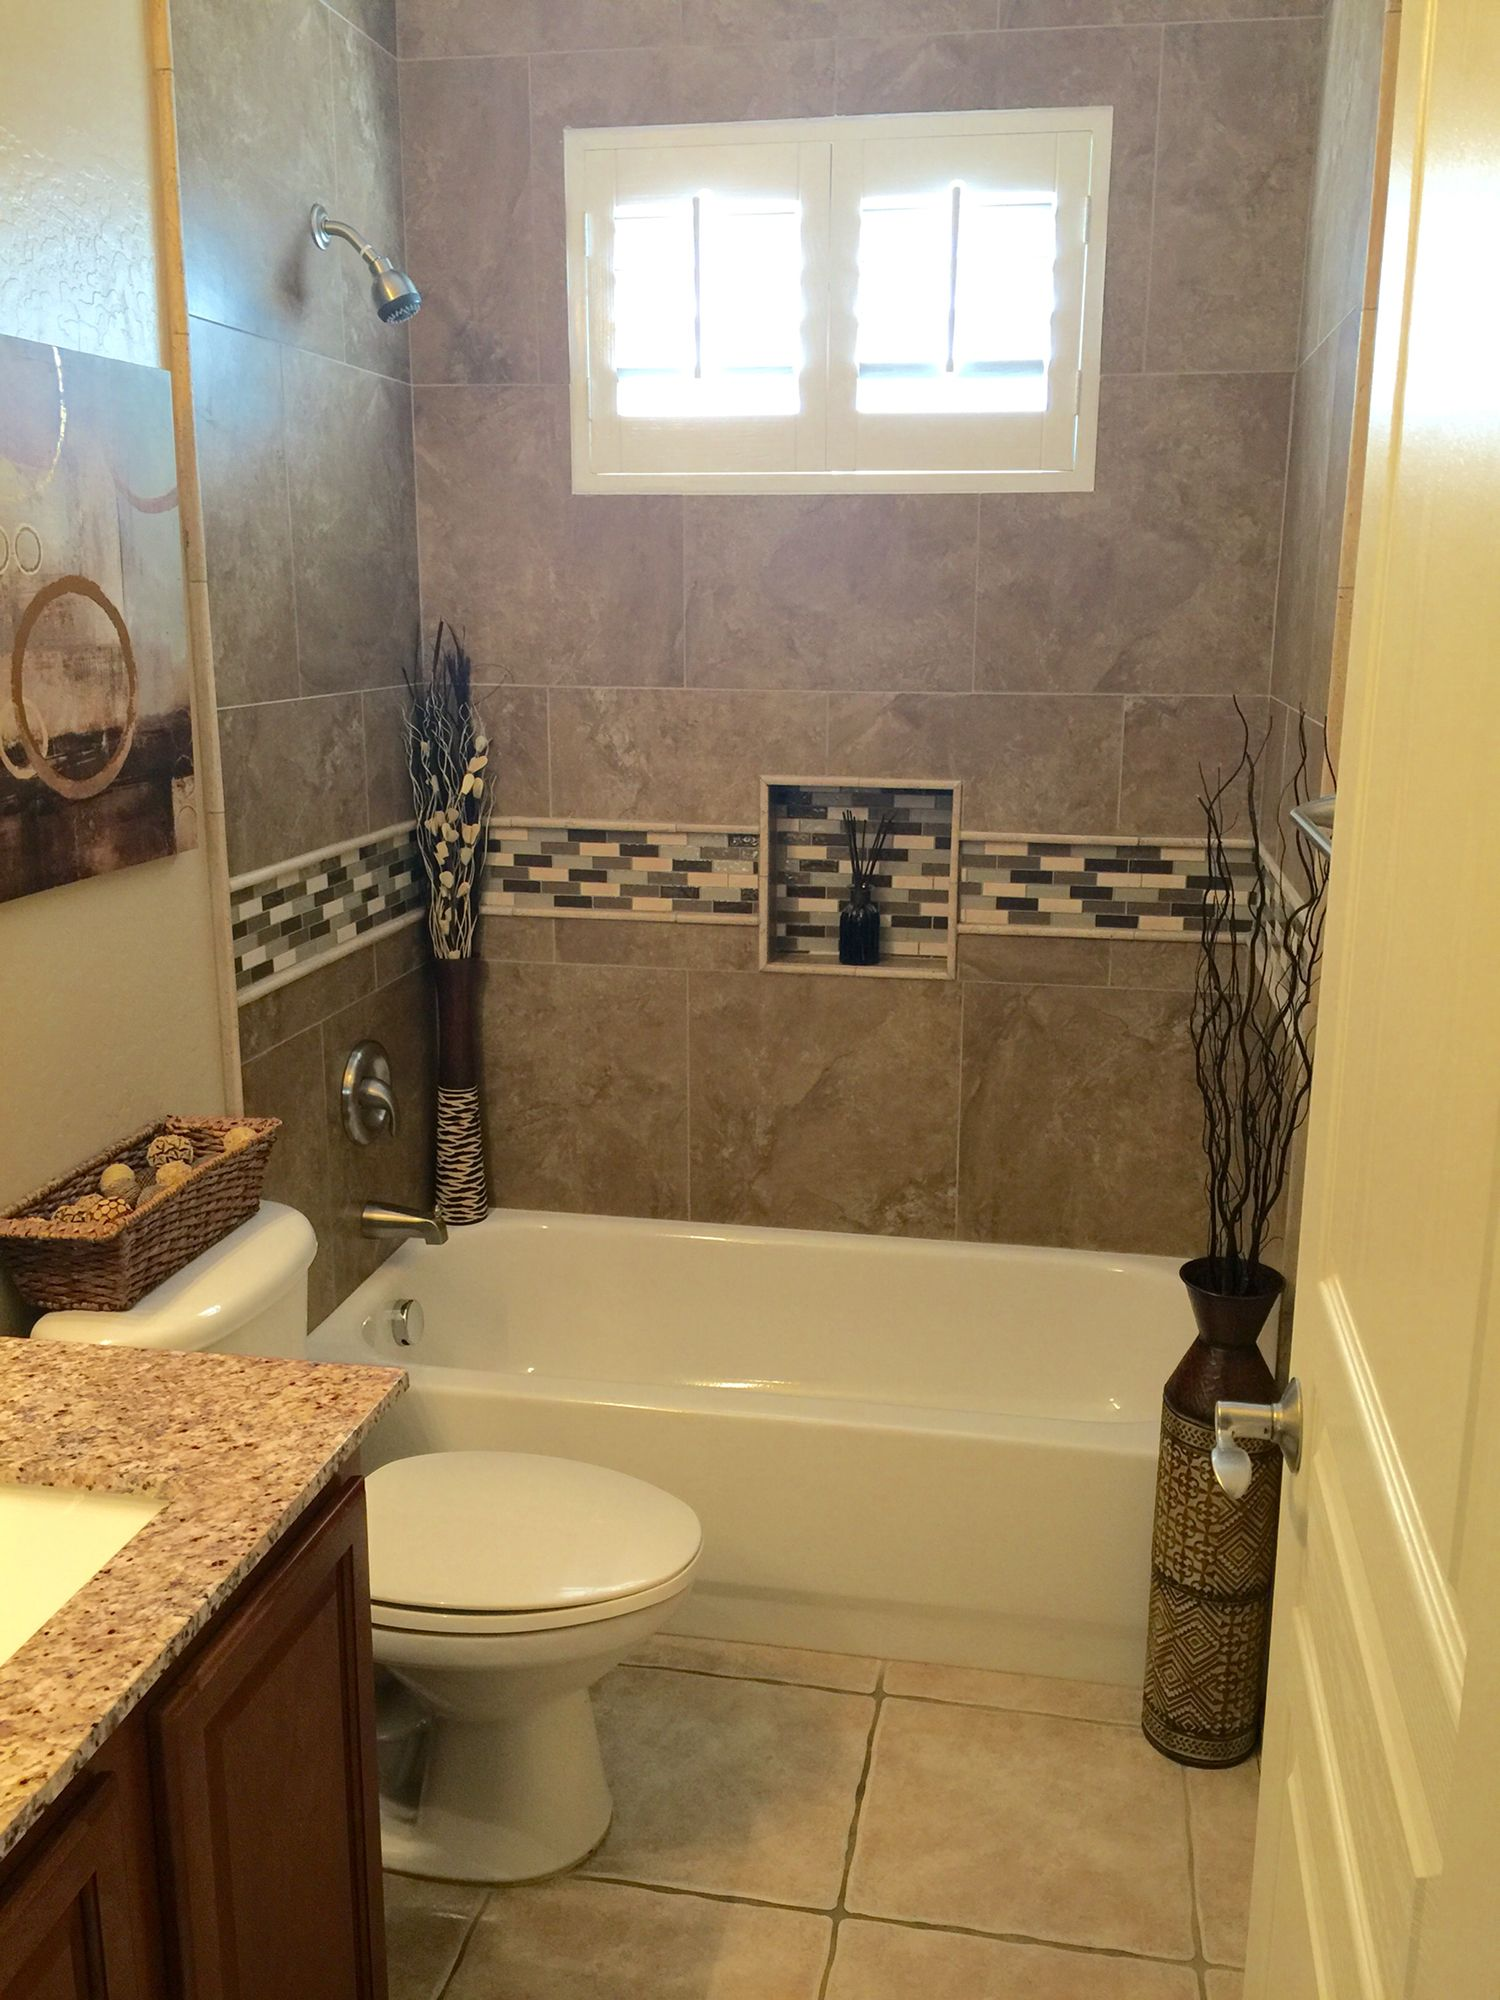 Bathroom tub and shower designs - Bathroom Remodel Tiled The Bathtub Shower Surround